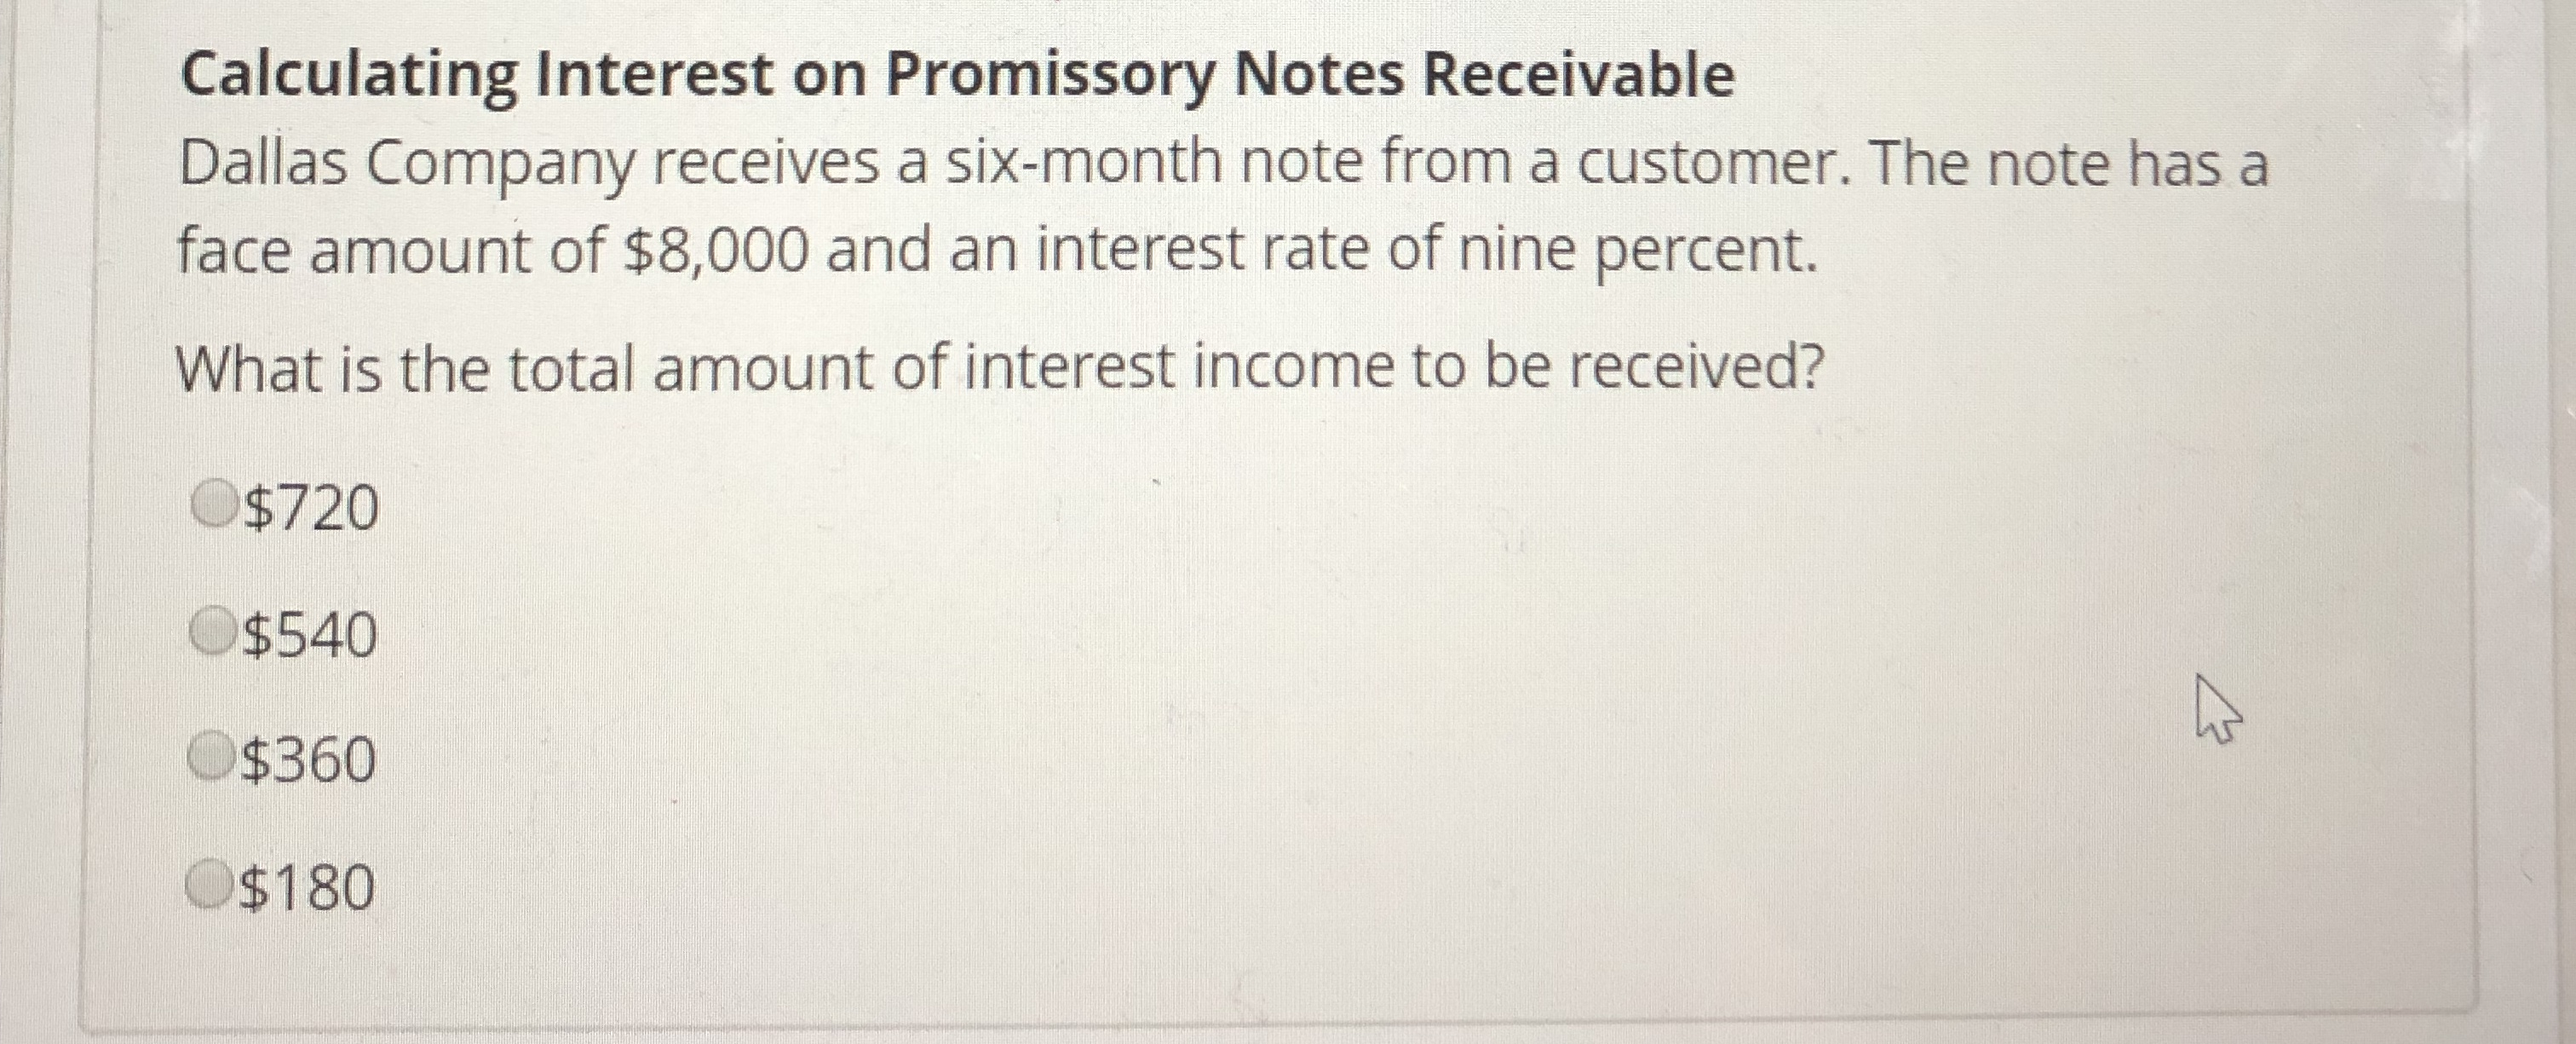 Calculating Interest on Promissory Notes Receivable Dallas Company receives a six-month note from a customer. The note has a face amount of $8,000 and an interest rate of nine percent. What is the total amount of interest income to be received? O$720 $540 $360 $180